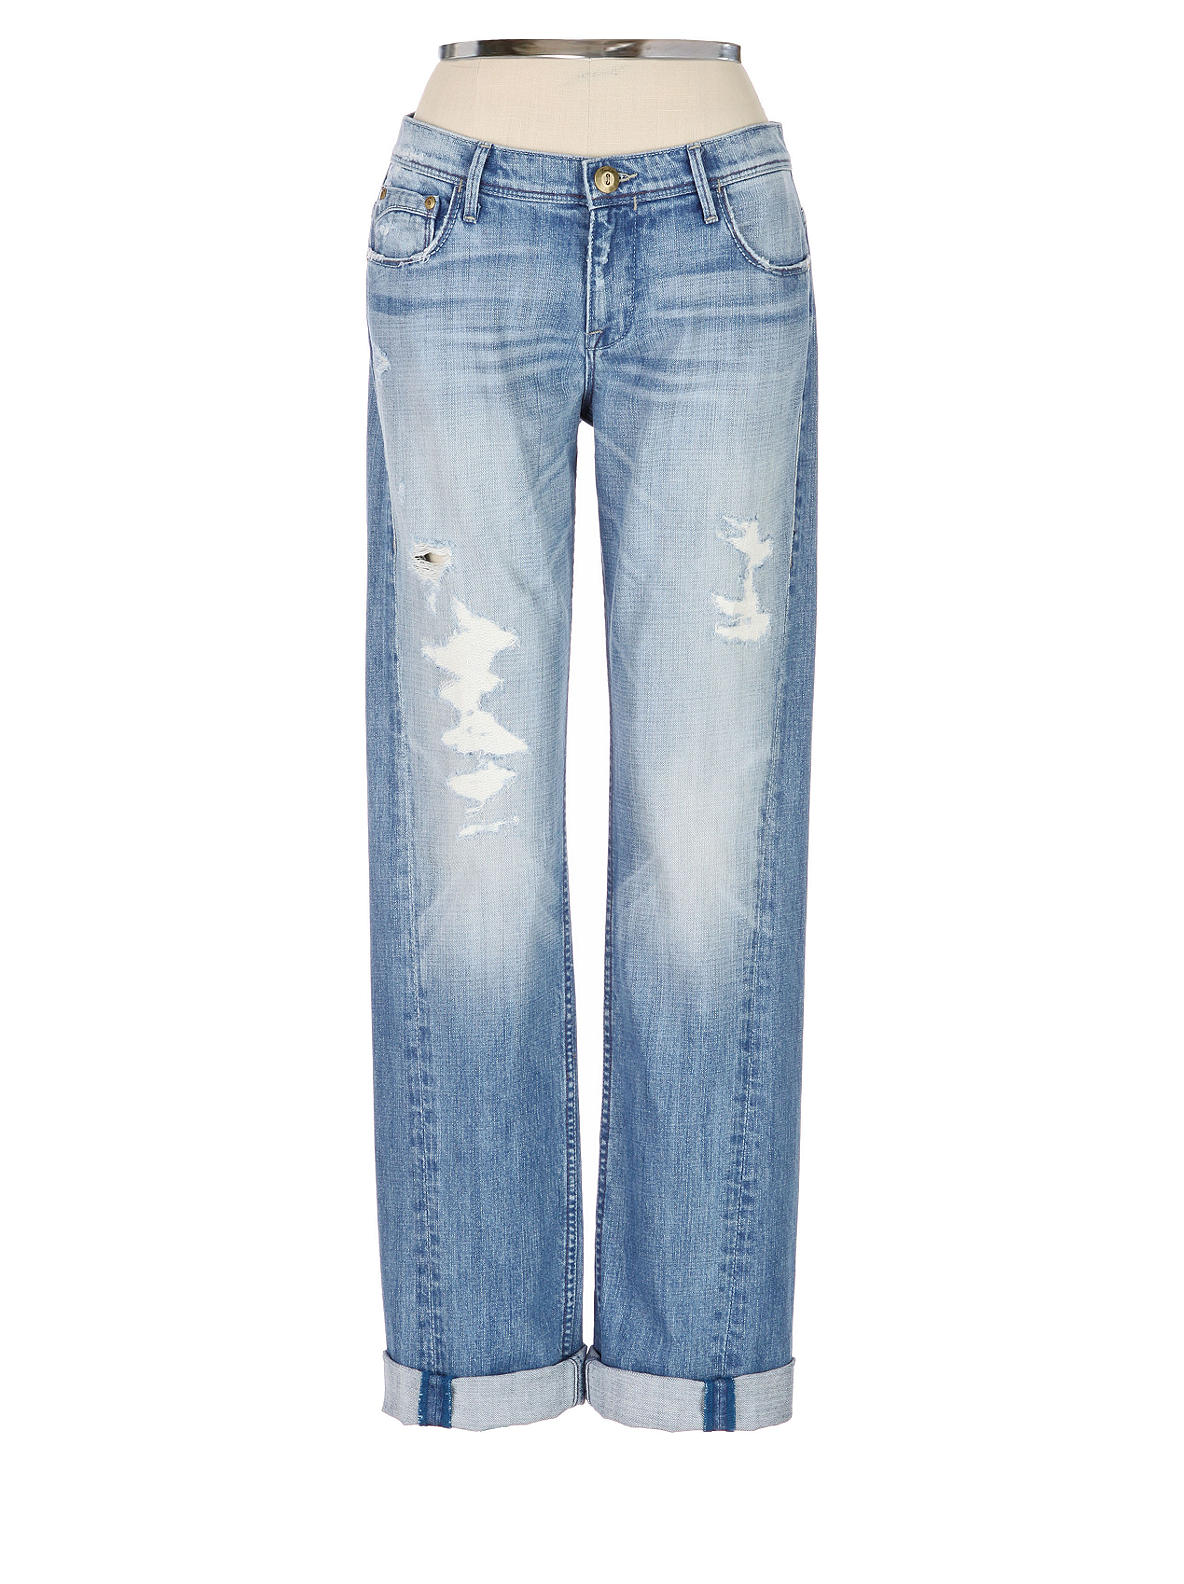 Level 99 Joplin Distressed Denim  - Anthropologie.com :  jeans jean level 99 denim